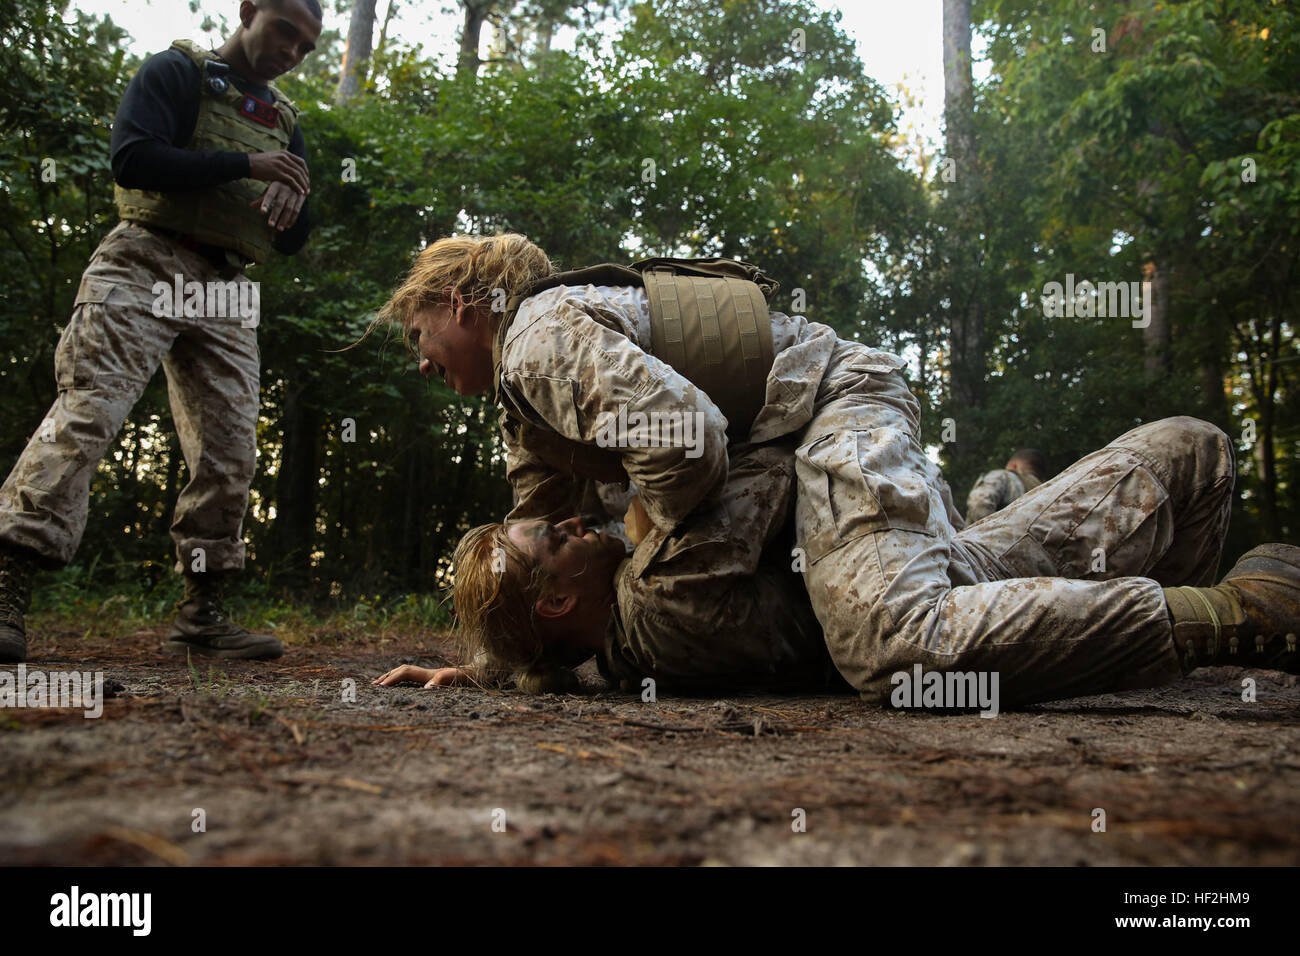 Marine Corps Martial Arts Program Instructor Stockfotos & Marine ...